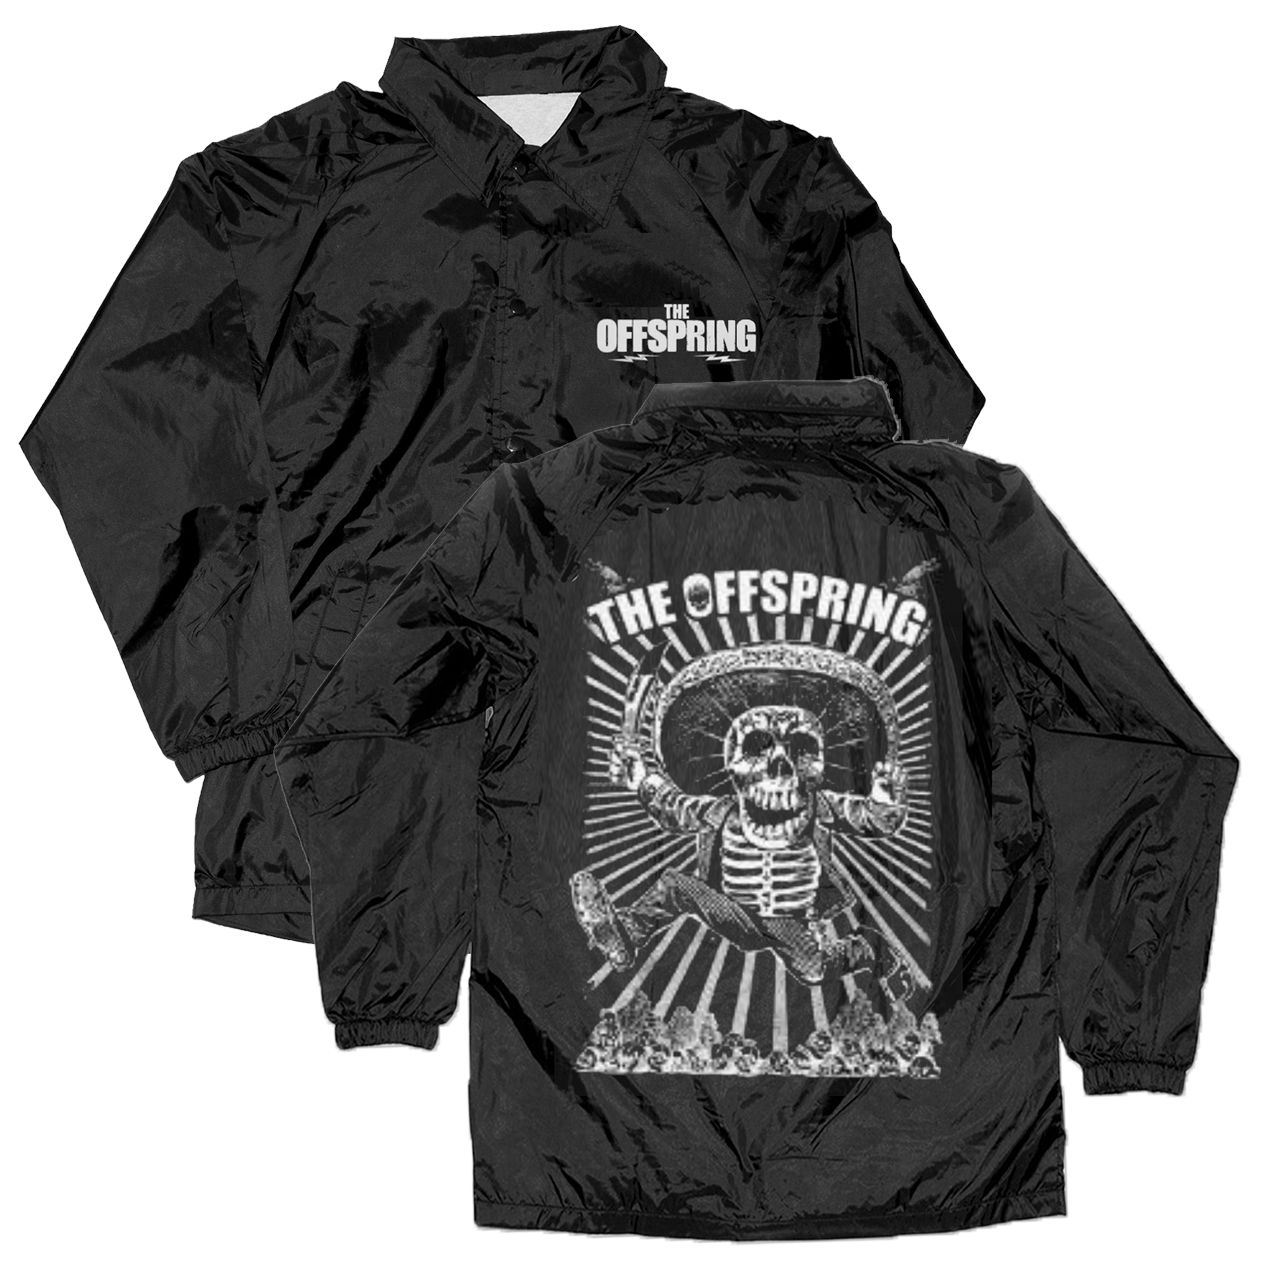 The Offspring - Skeleton Jumping Tour 2019 [Windbreaker]